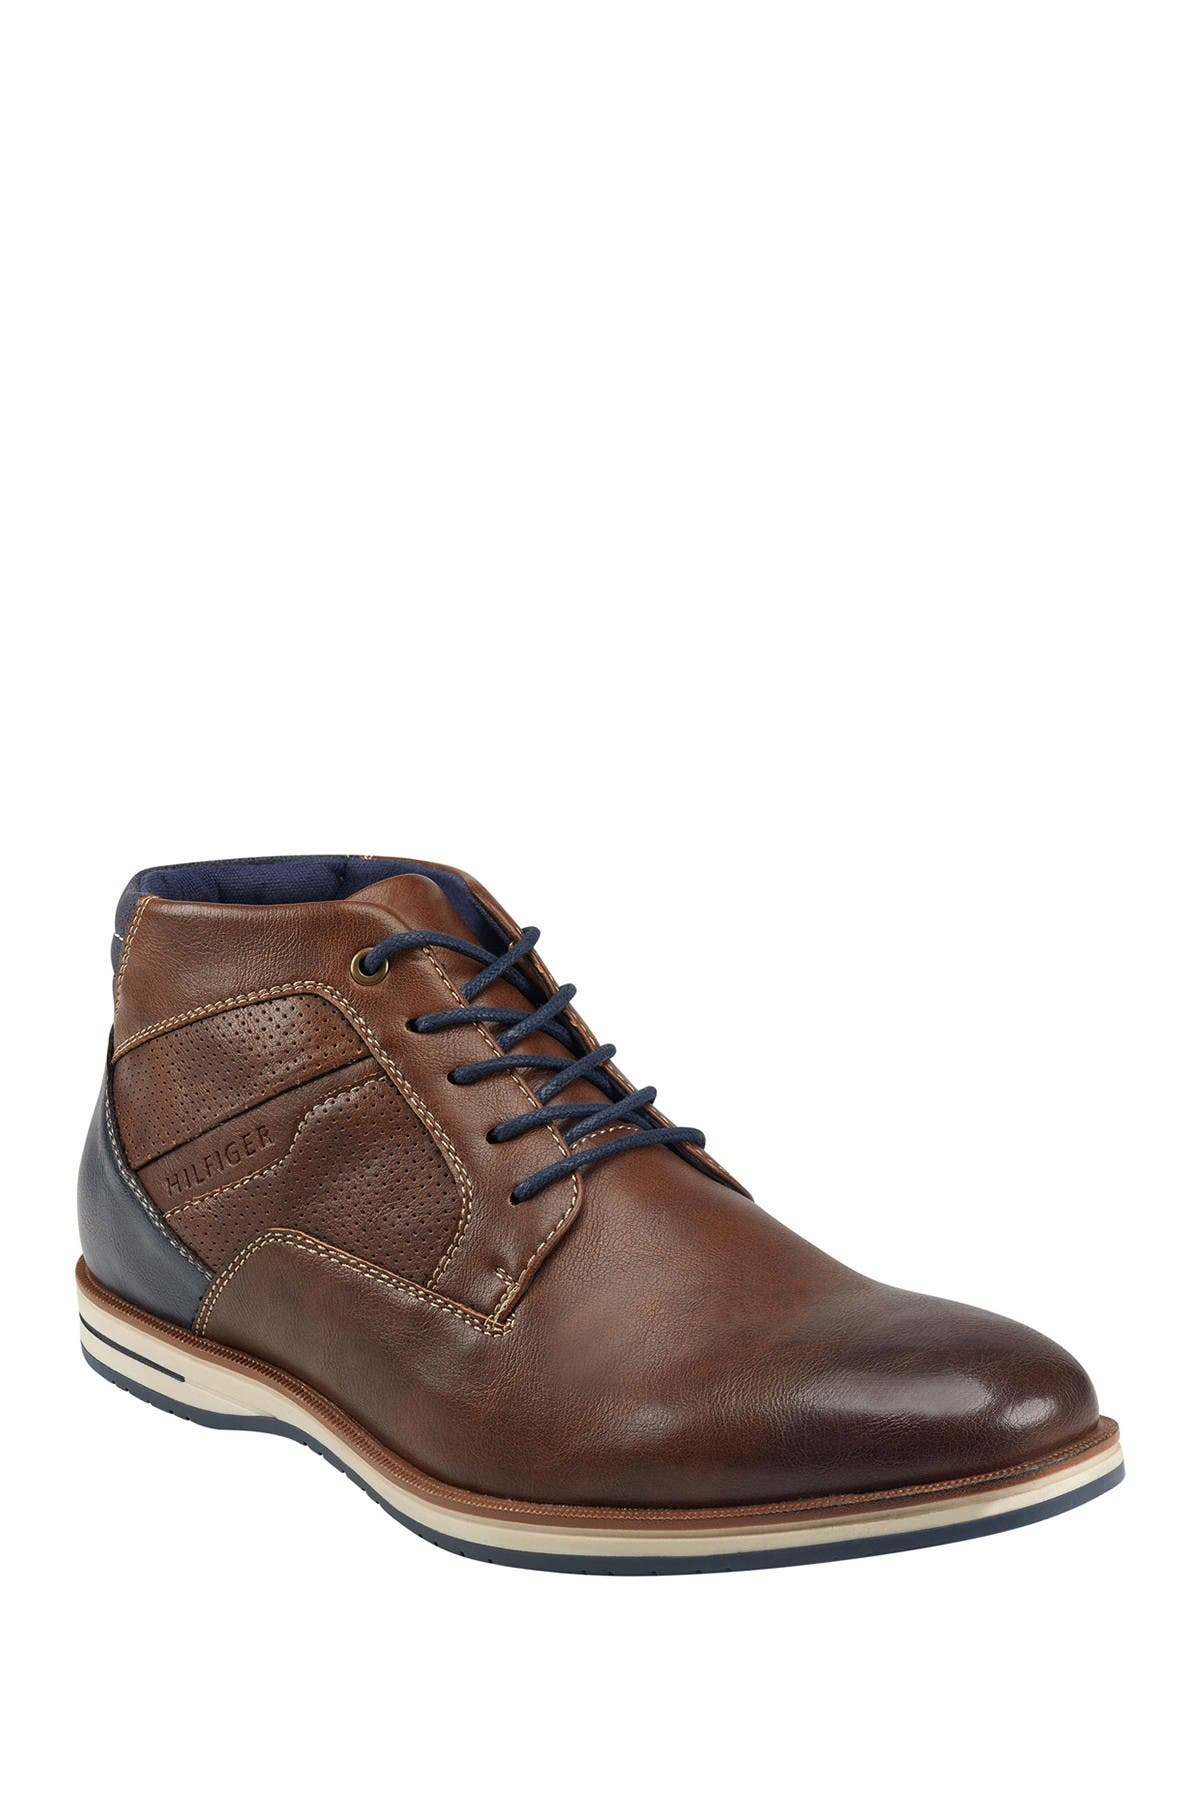 Image of Tommy Hilfiger Ulan Lace-Up Boot